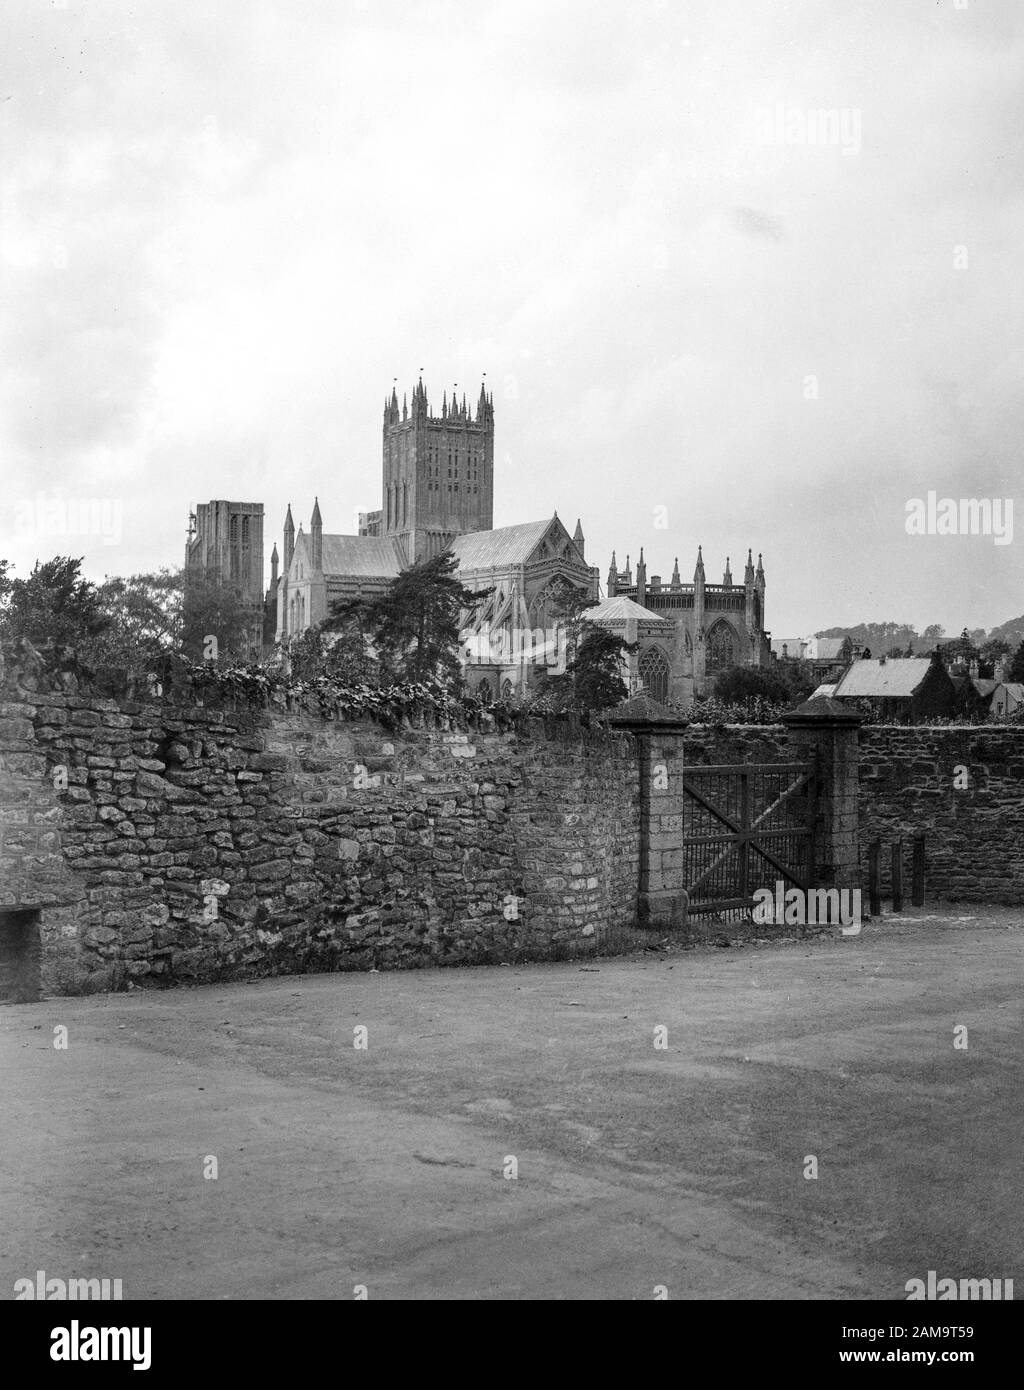 Archive image circa 1925-30 of Wells Cathedral, Somerset, taken from Tor Street. Scanned directly from the original negative. Stock Photo